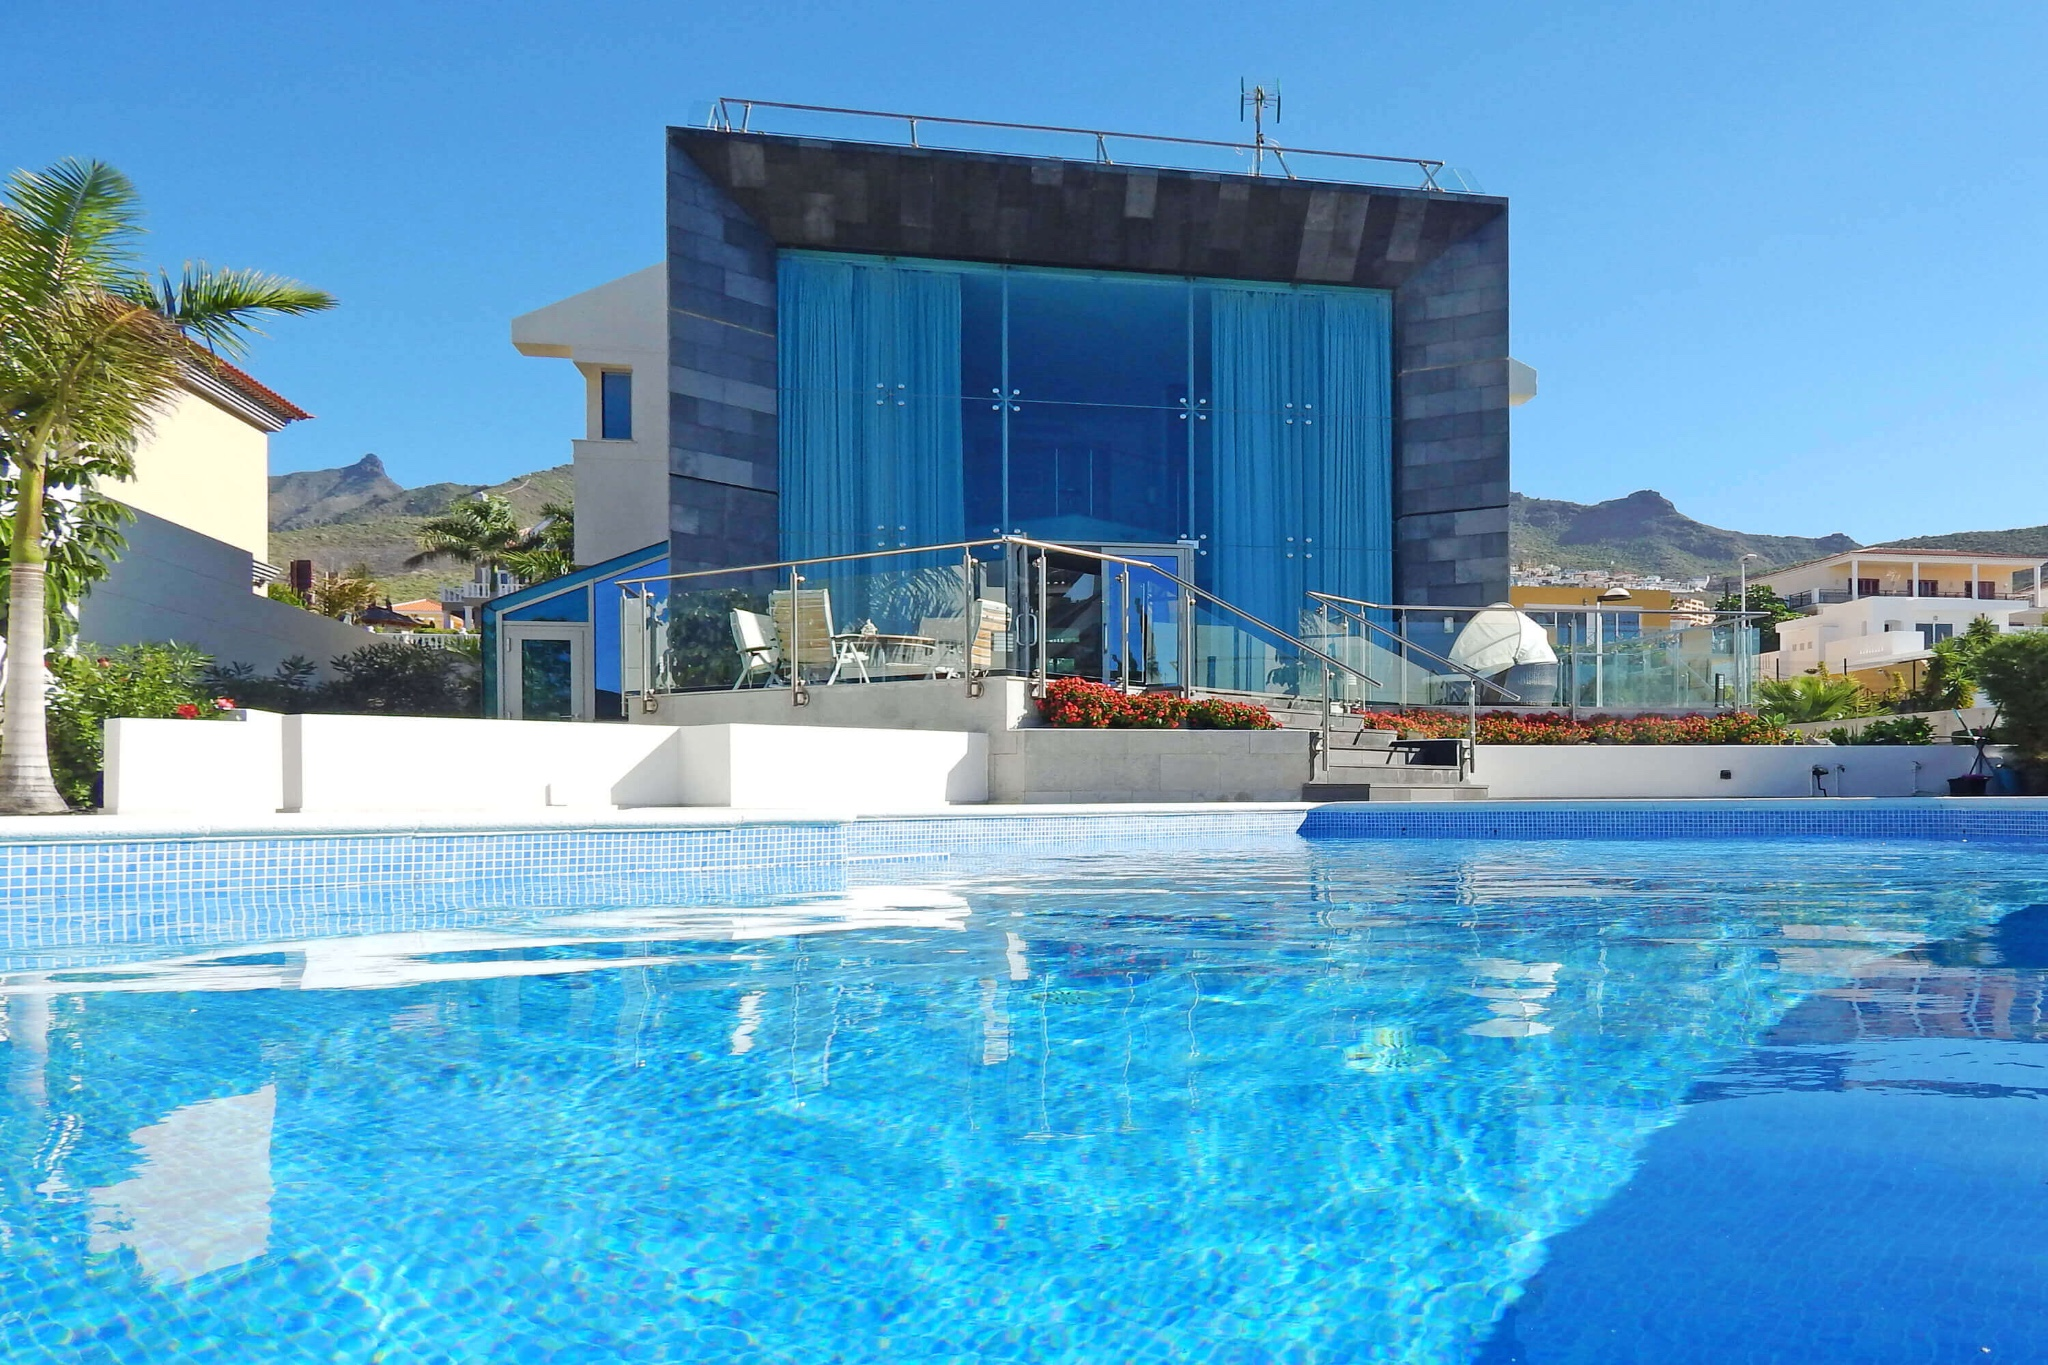 Modern luxury villa with private pool and 5 bedrooms on the Costa Adeje, ideal for a holiday with family and friends in Tenerife